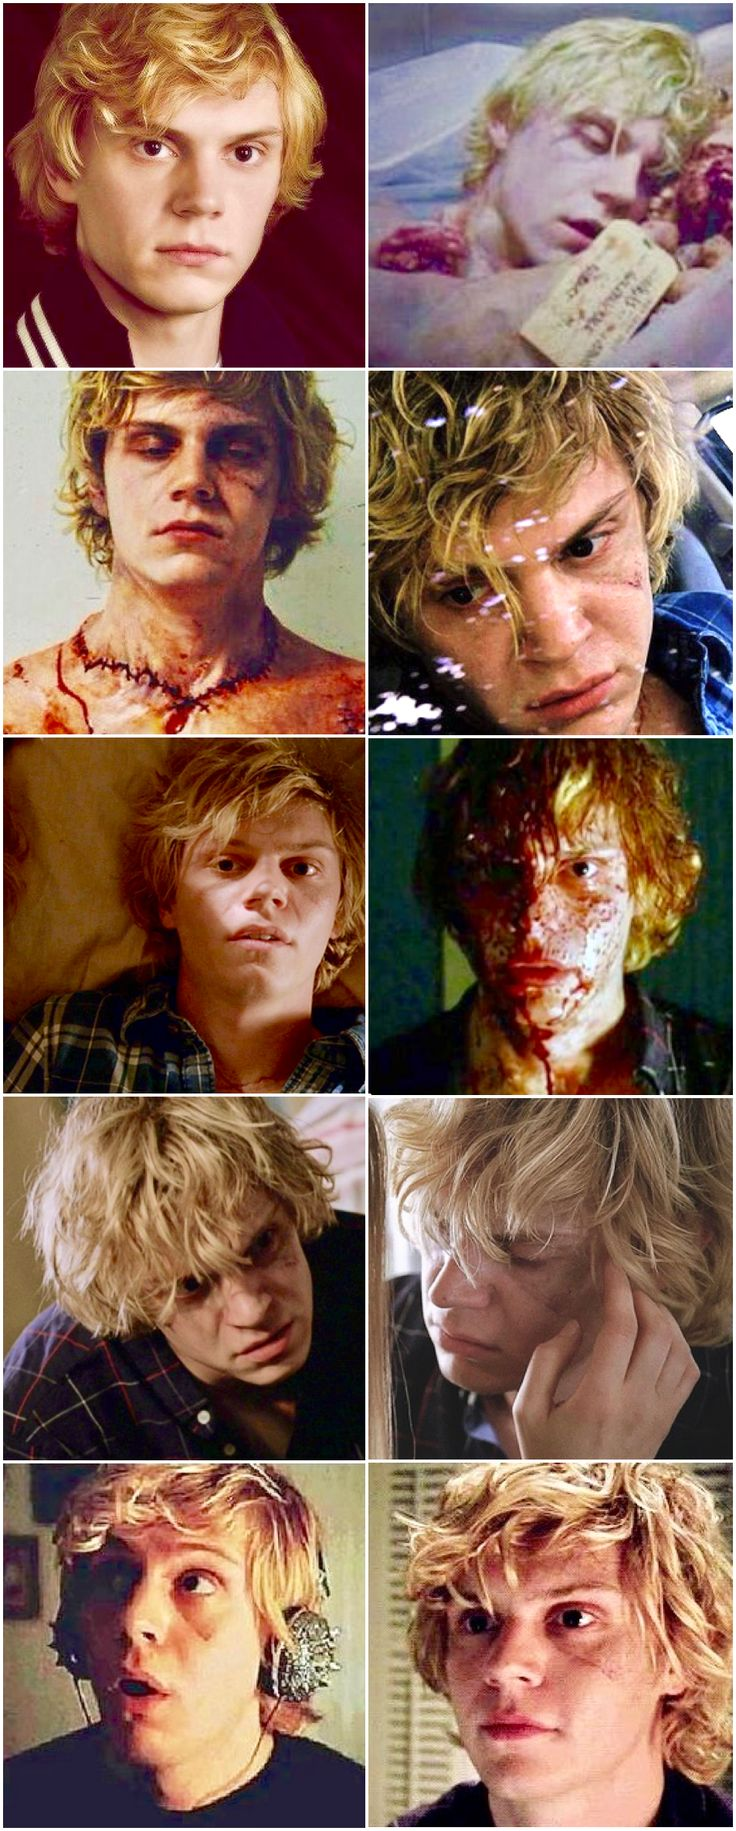 Evan Peters Megapin! Kyle Spencer, the Jigsaw Puzzle Boy in AHS Coven. One of Evan's more underrated performances. He was very very good actually. | Follow rickysturn/evan-peters now!